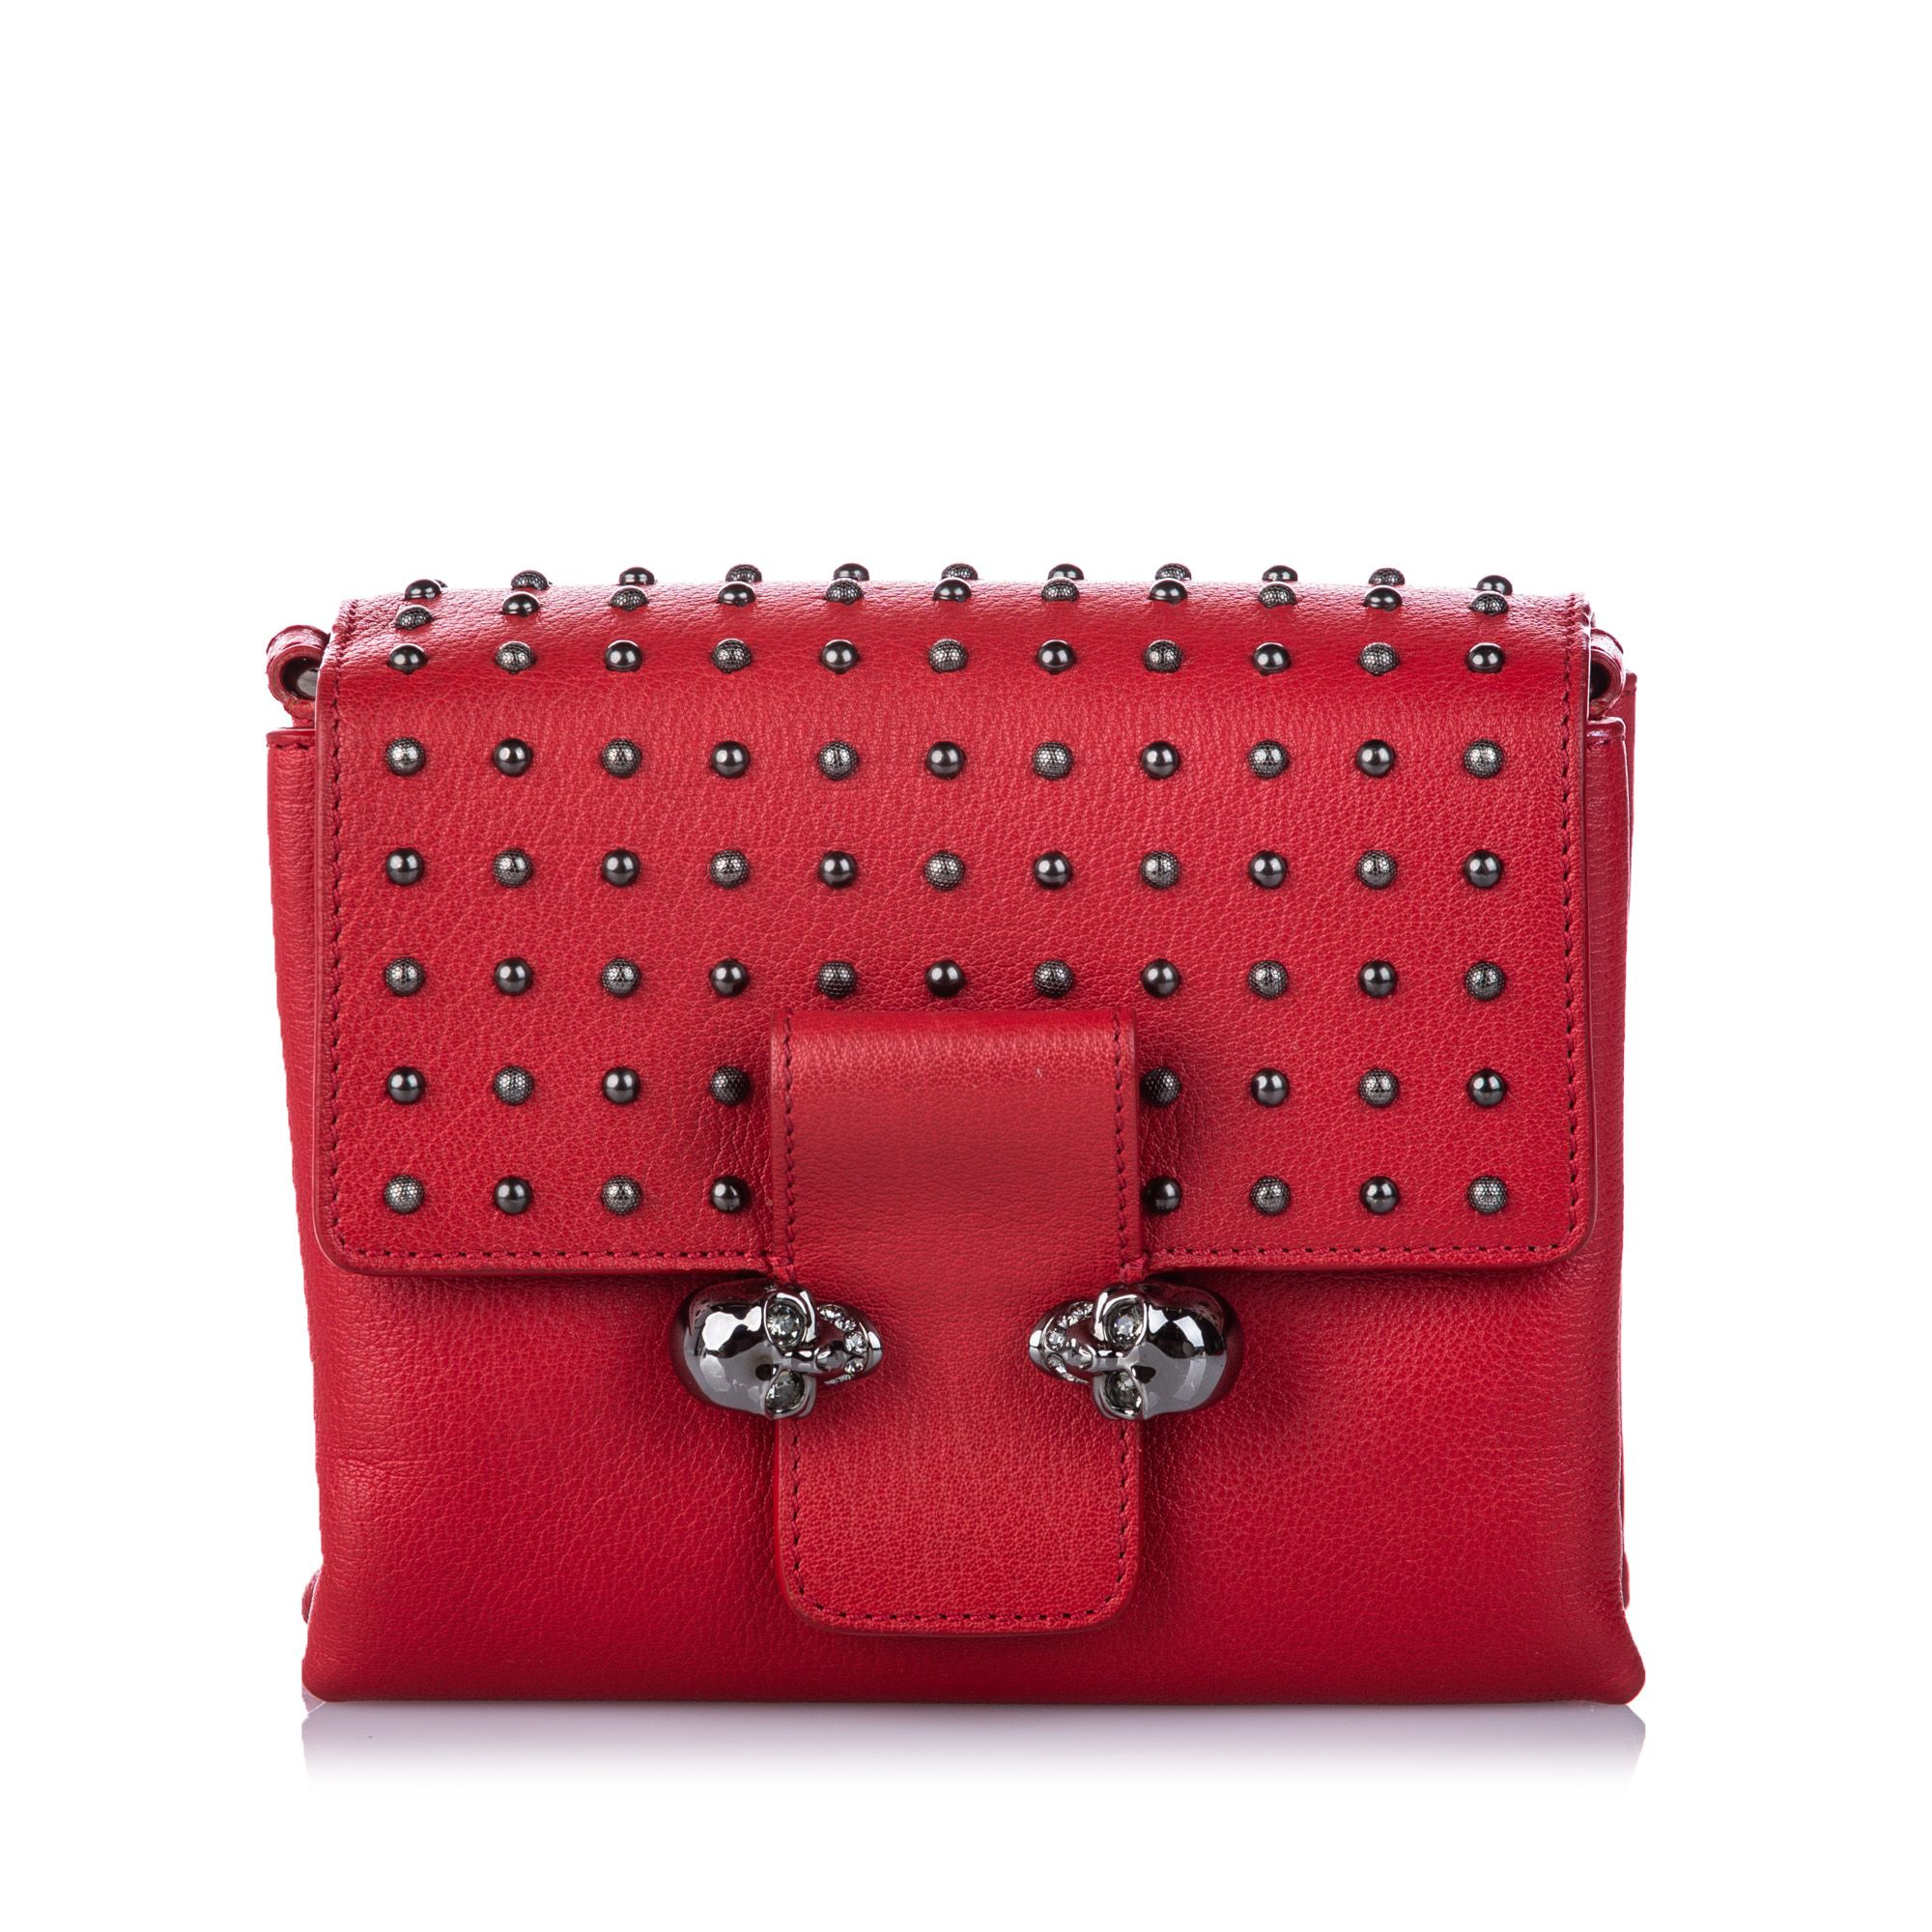 Vintage Alexander McQueen Studded Leather Twin Skull Crossbody Bag Red